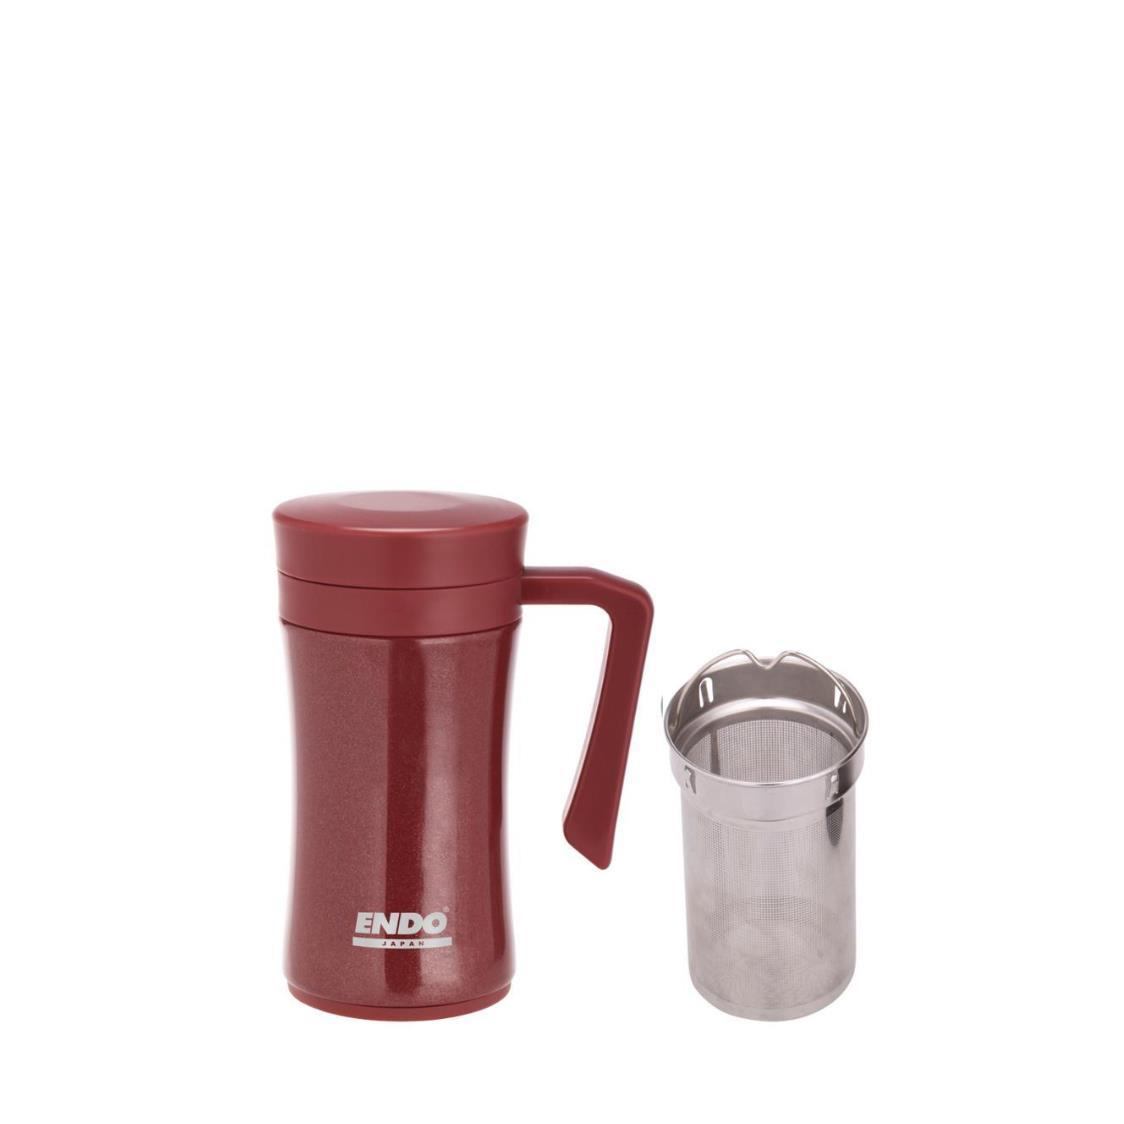 450Ml Double Stainless Steel Desk Mug With Tea Strainer Burgundy CX-3001